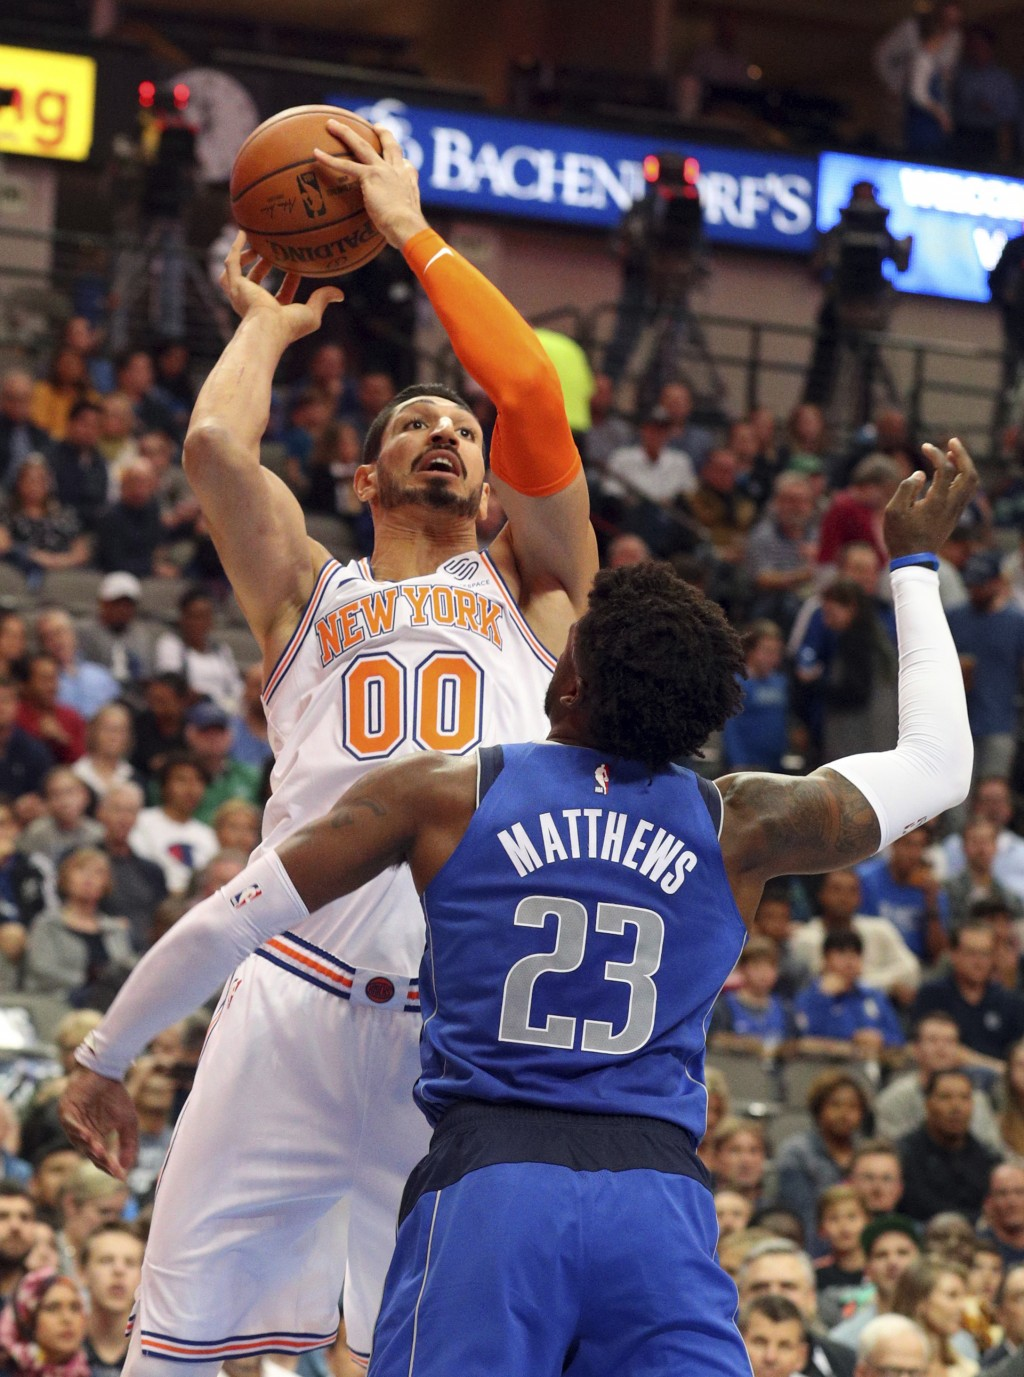 New York Knicks center Enes Kanter (00) shoots over Dallas Mavericks guard Wesley Matthews (23) in the first half of an NBA basketball game Friday, No...